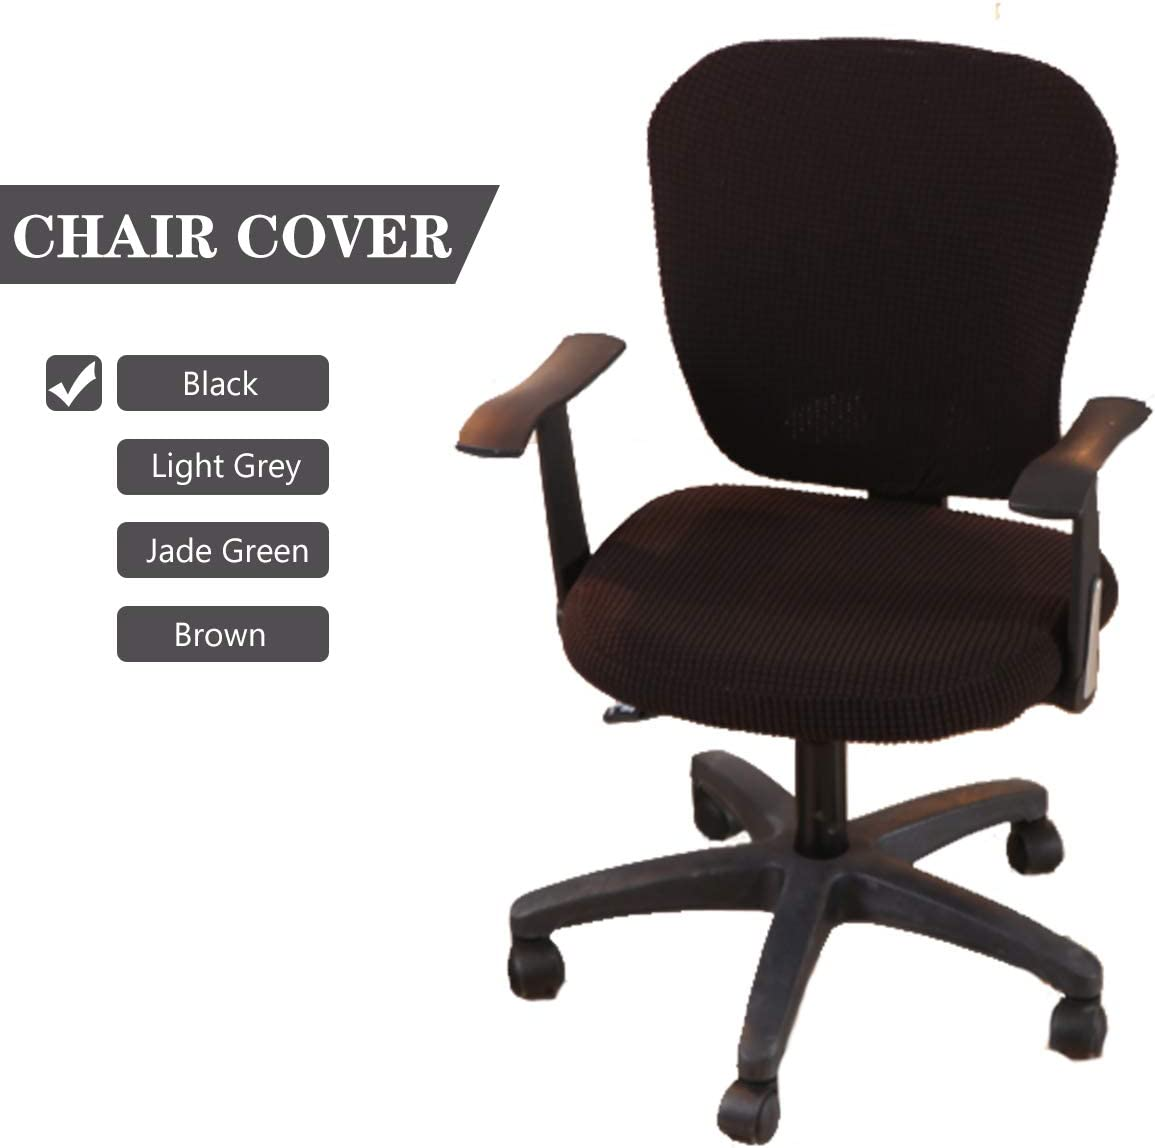 CAVEEN Stretch Office Computer Chair Covers Universal Protective Seat Cover Removable Washable Anti-dust Chair Slipcover 2-Pack Black